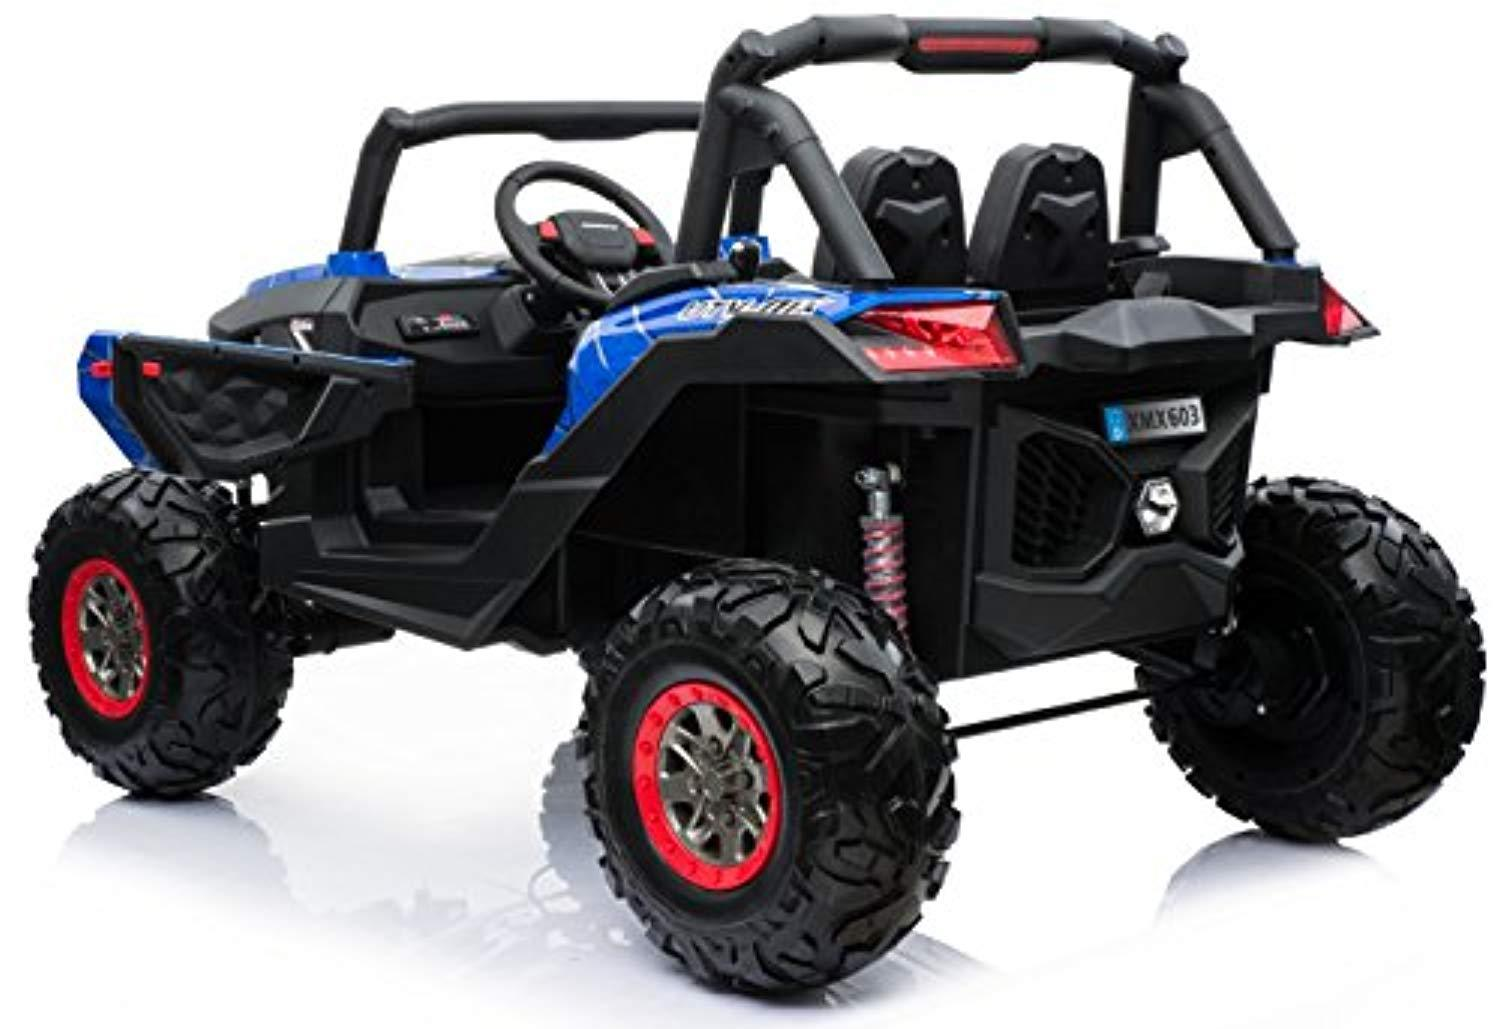 2 Seater Buggy Quad Bike All Wheels 4WD Drive Ride On Kids Electric Toy Car 2x12V Battery Powered LED Lights MP3 USB RC Parental Remote Blue